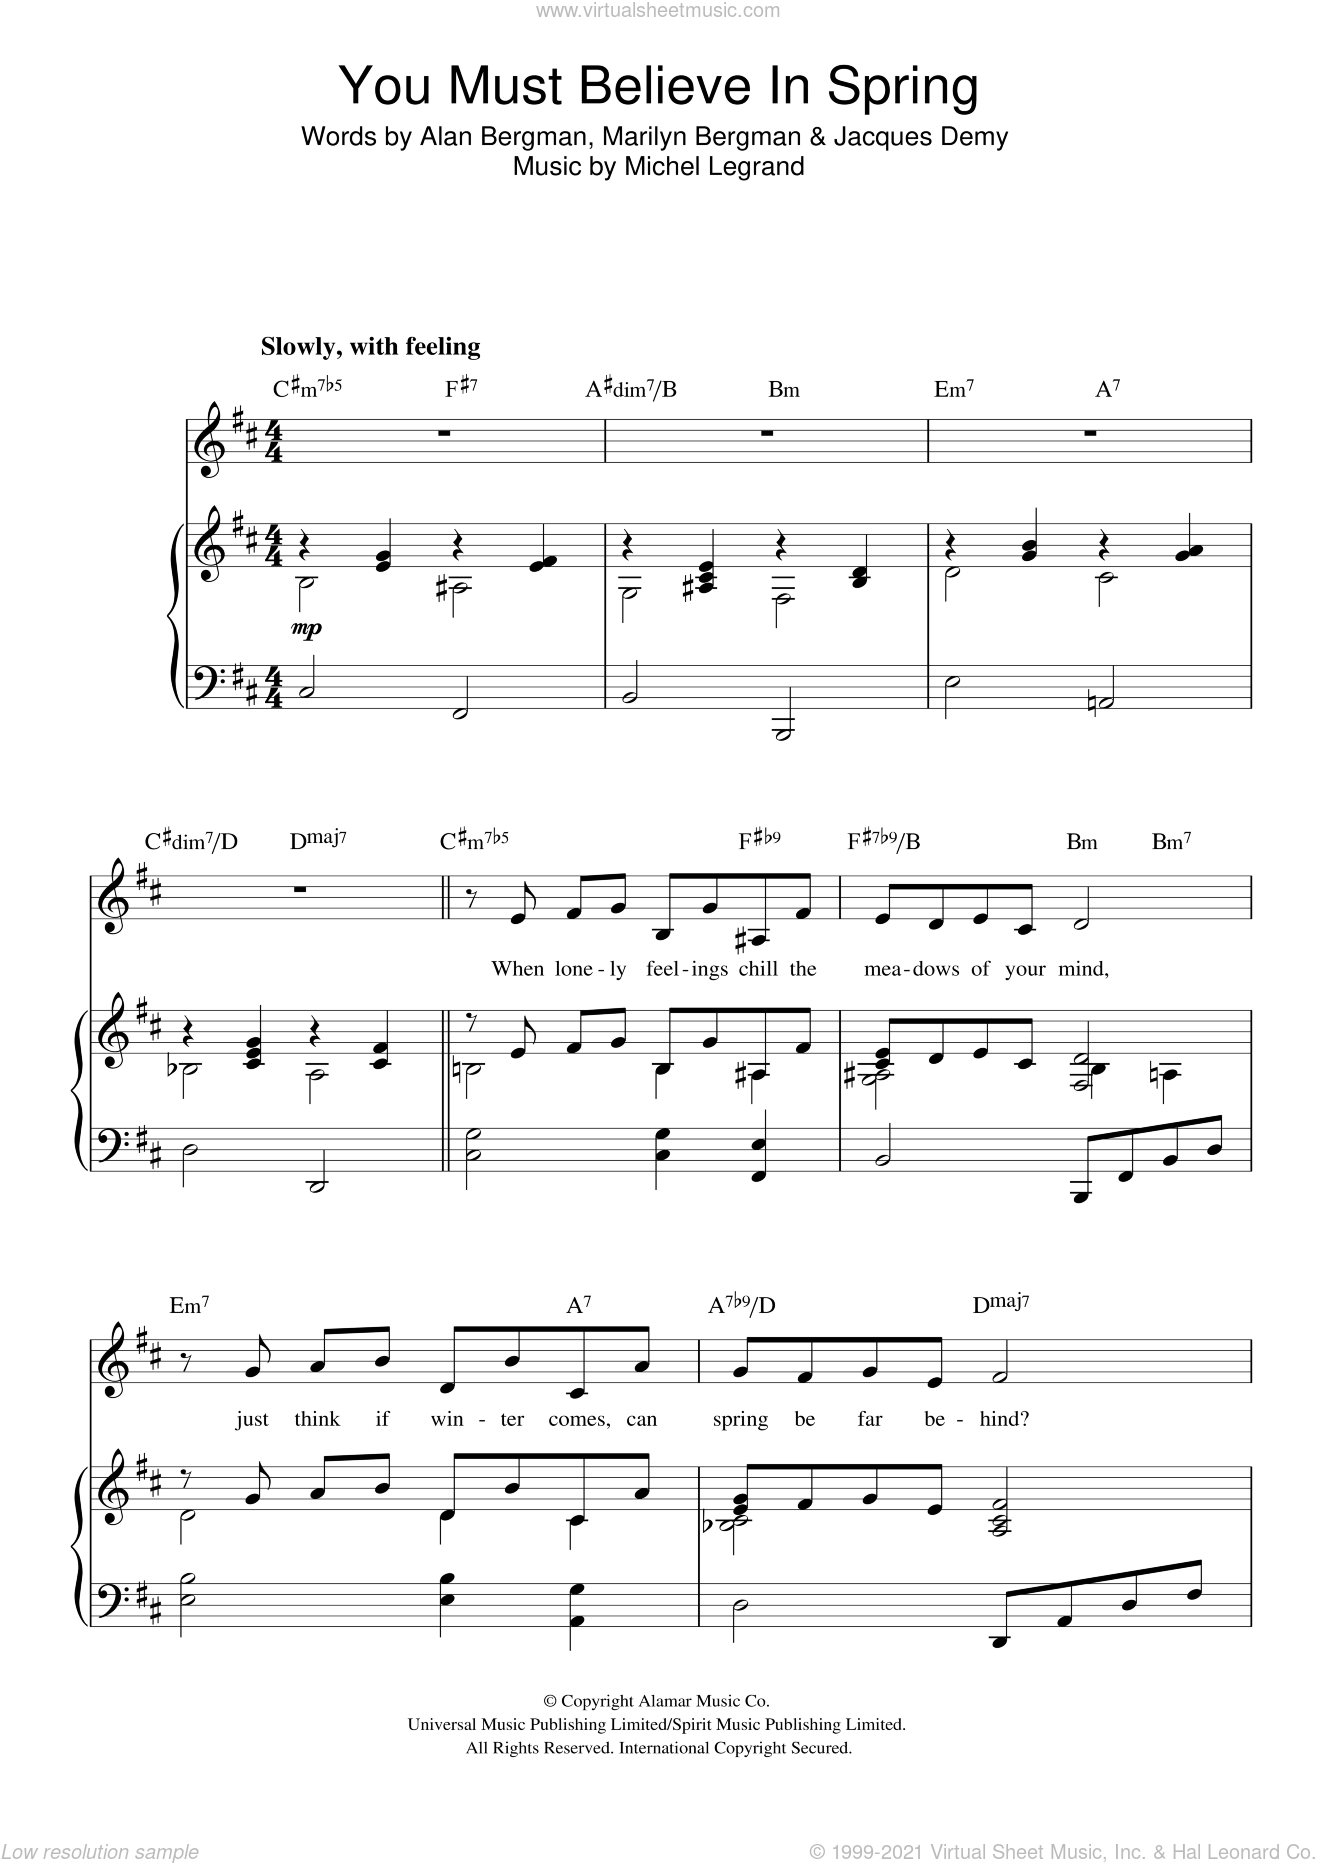 You Must Believe In Spring sheet music for voice, piano or guitar by Michel LeGrand, Alan Bergman, Jacques Demy and Marilyn Bergman, intermediate skill level